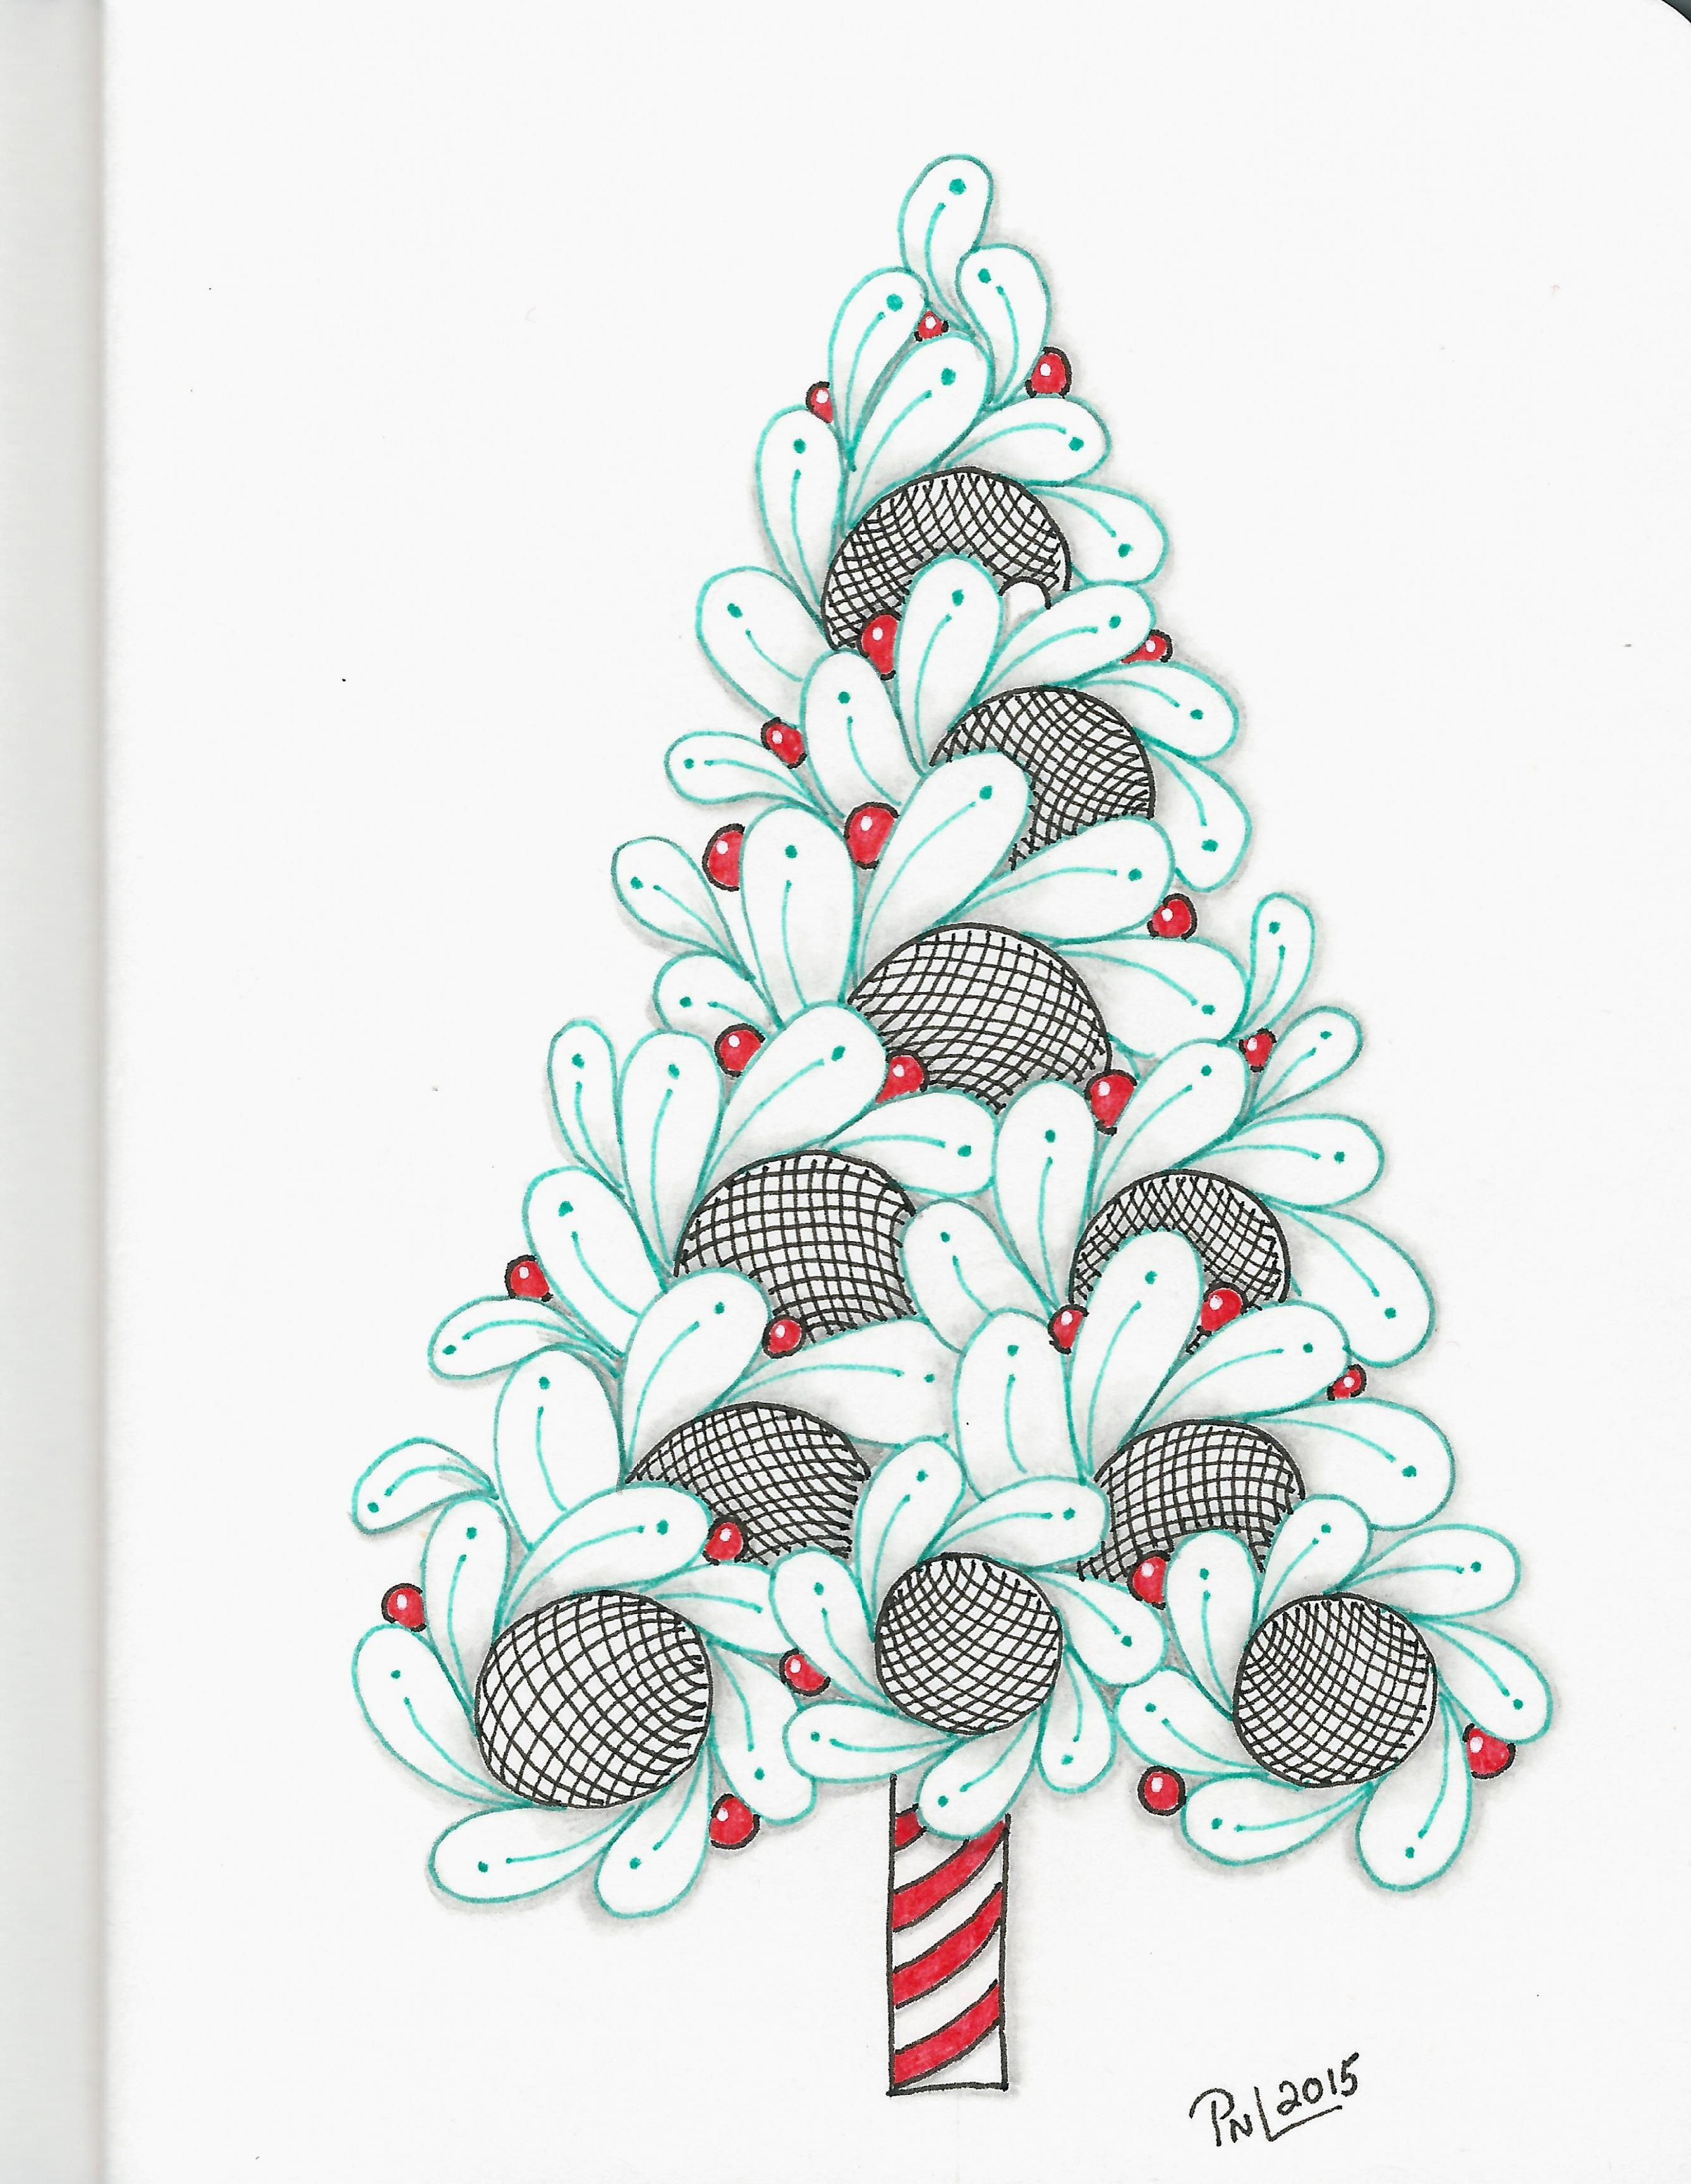 13 Of 16 Christmas Trees Show Casing A Single Tangle Tangle Used Is Cirque Tangled Drawing Zentangle Patterns Christmas Art